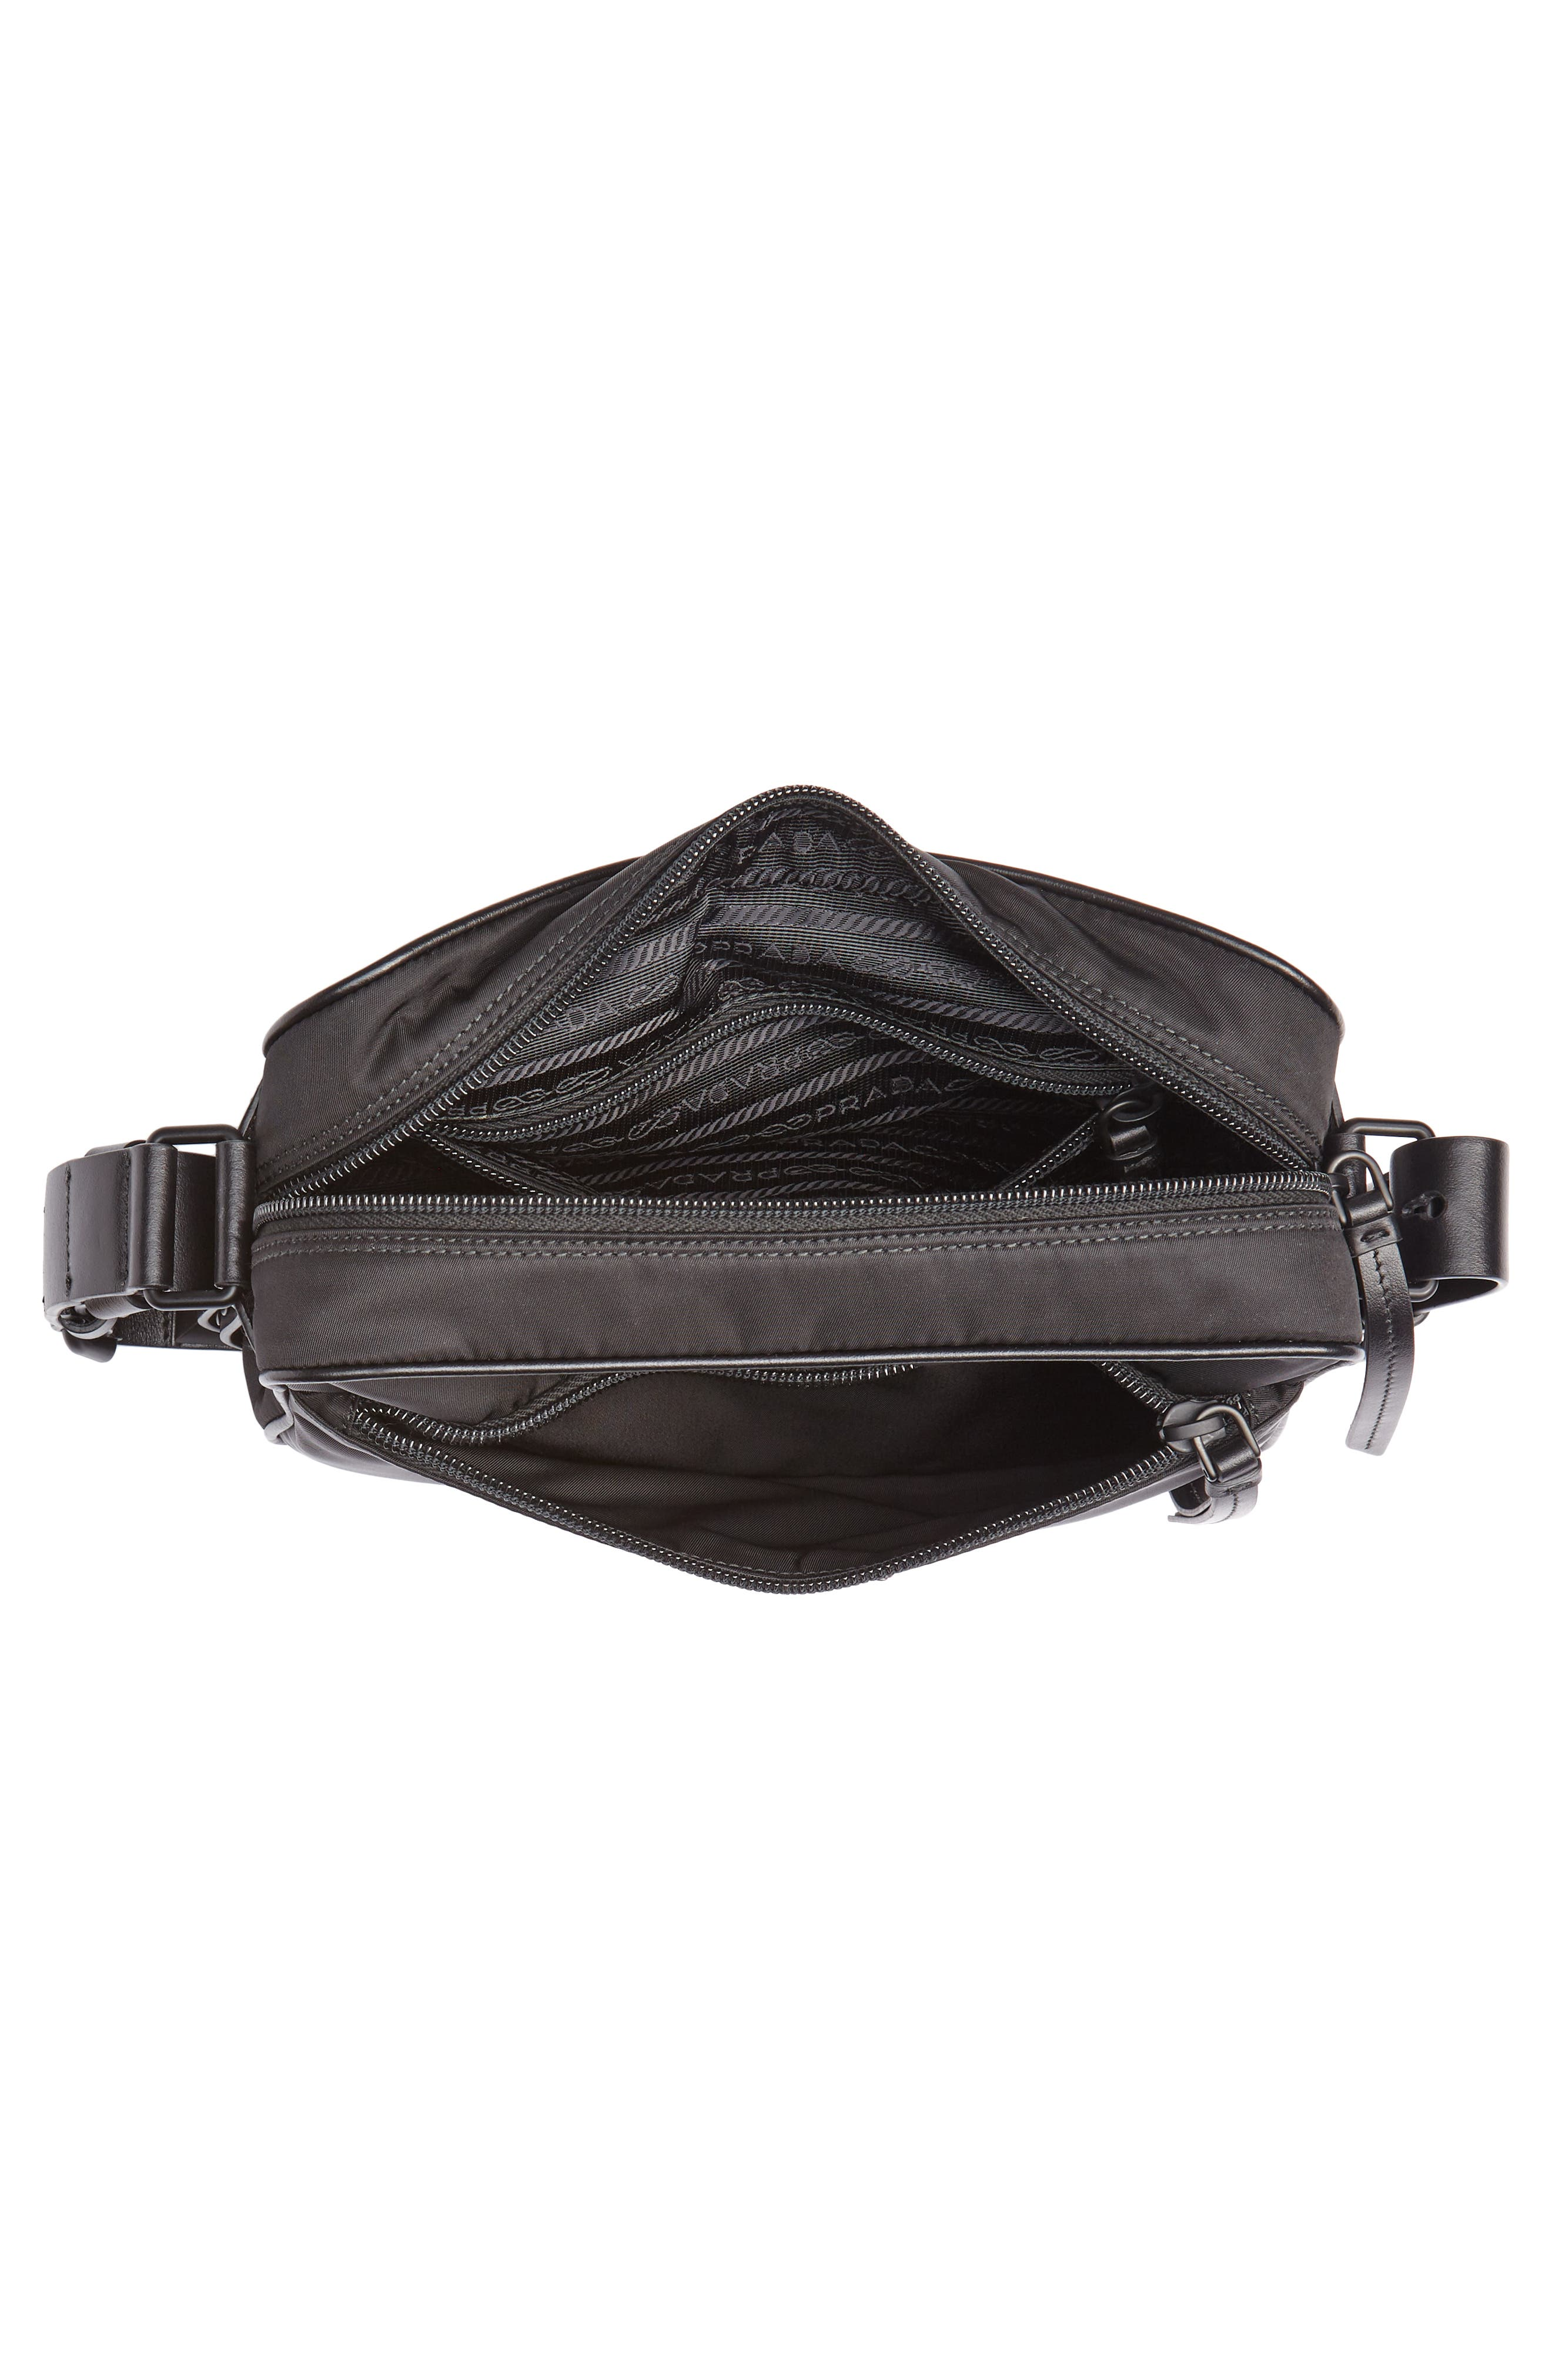 Small Nylon Camera Bag,                             Alternate thumbnail 4, color,                             F0632 NERO 1